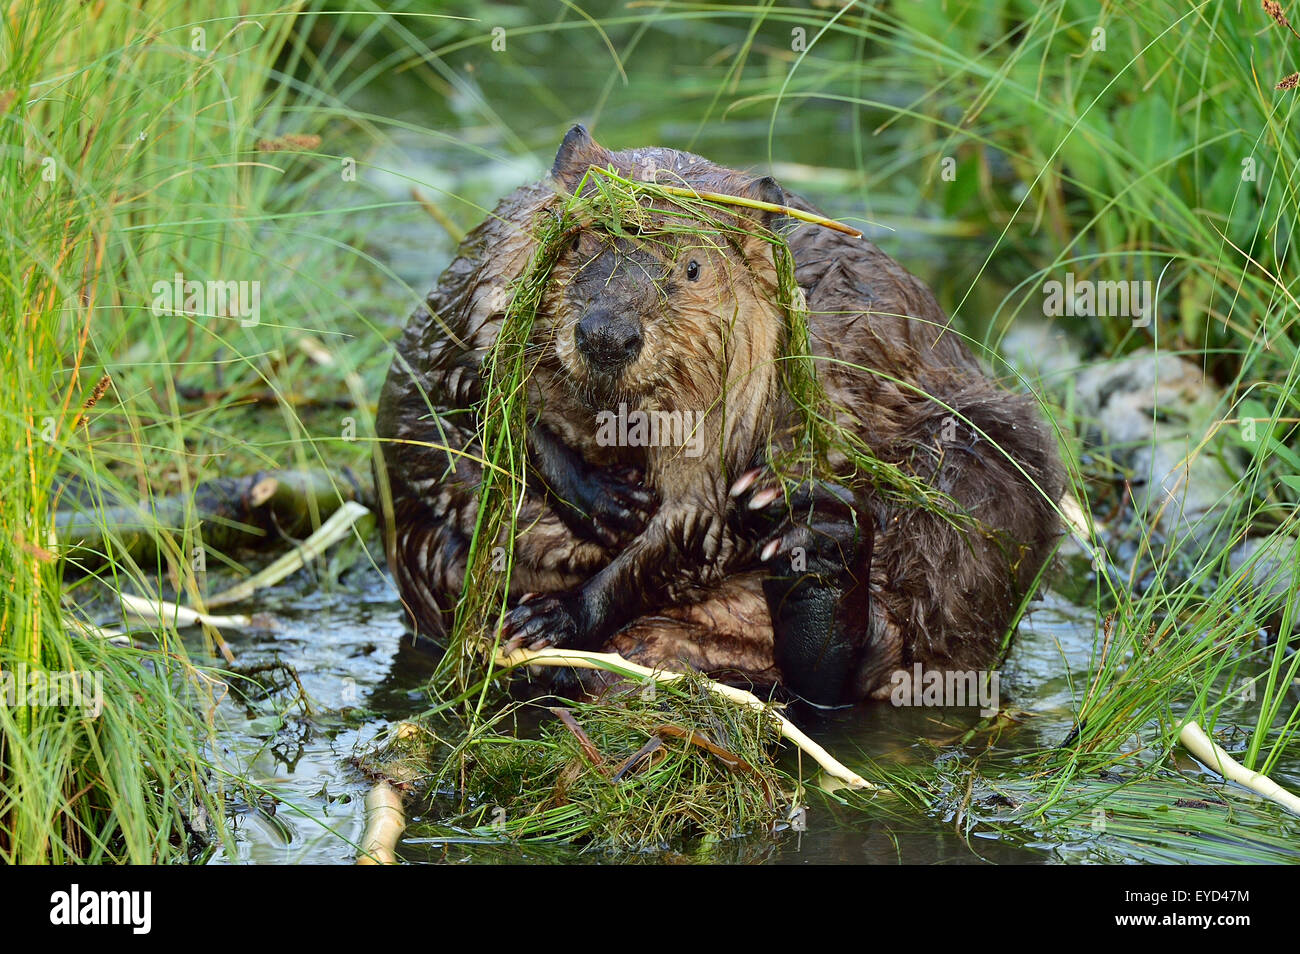 A front view of a wild beaver 'Castor canadensis',  pruning his fur - Stock Image